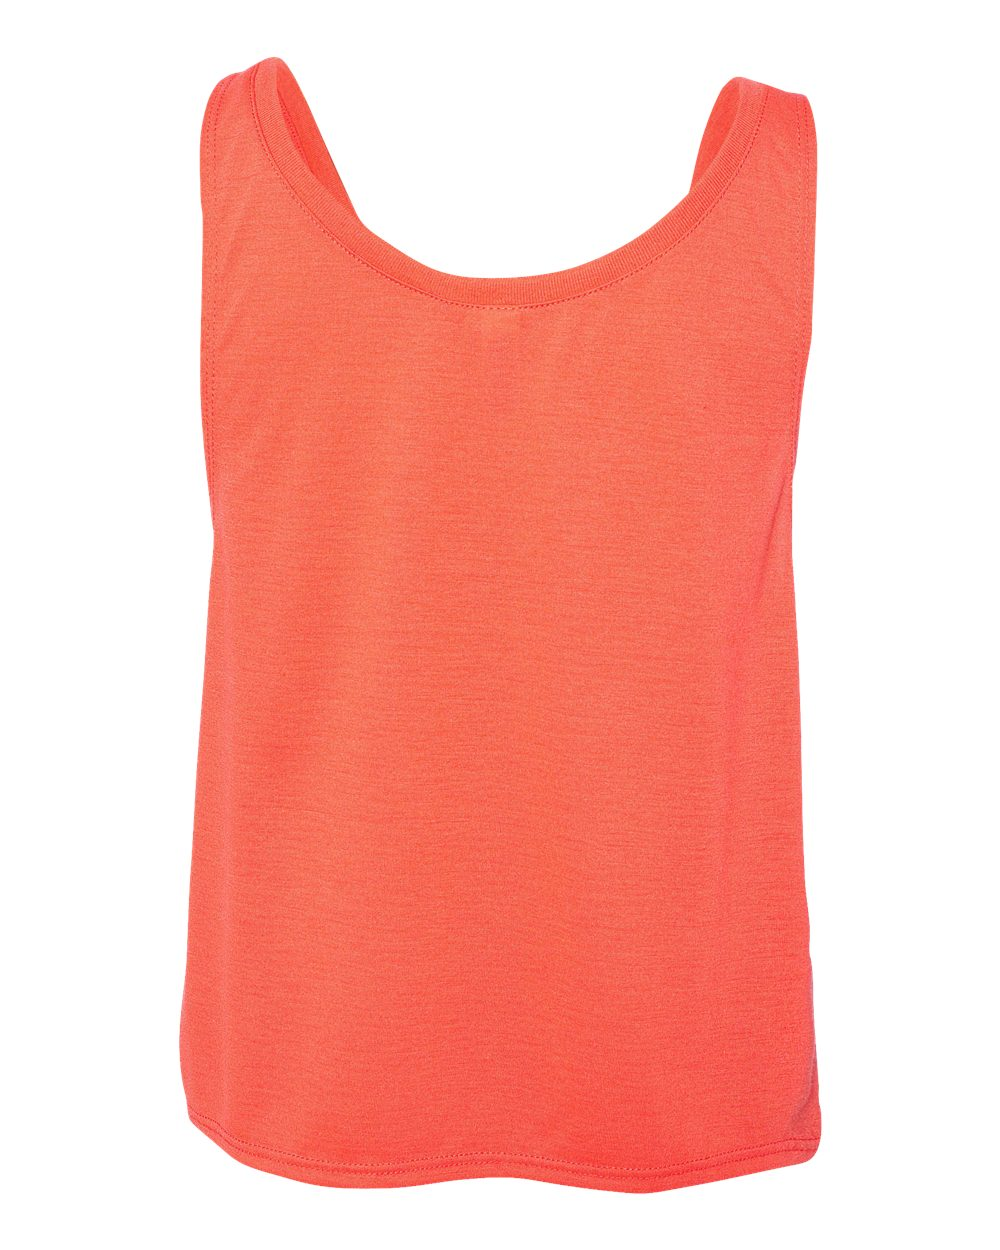 Bella-Canvas-Women-039-s-Flowy-Boxy-Tank-8880-S-XL thumbnail 16